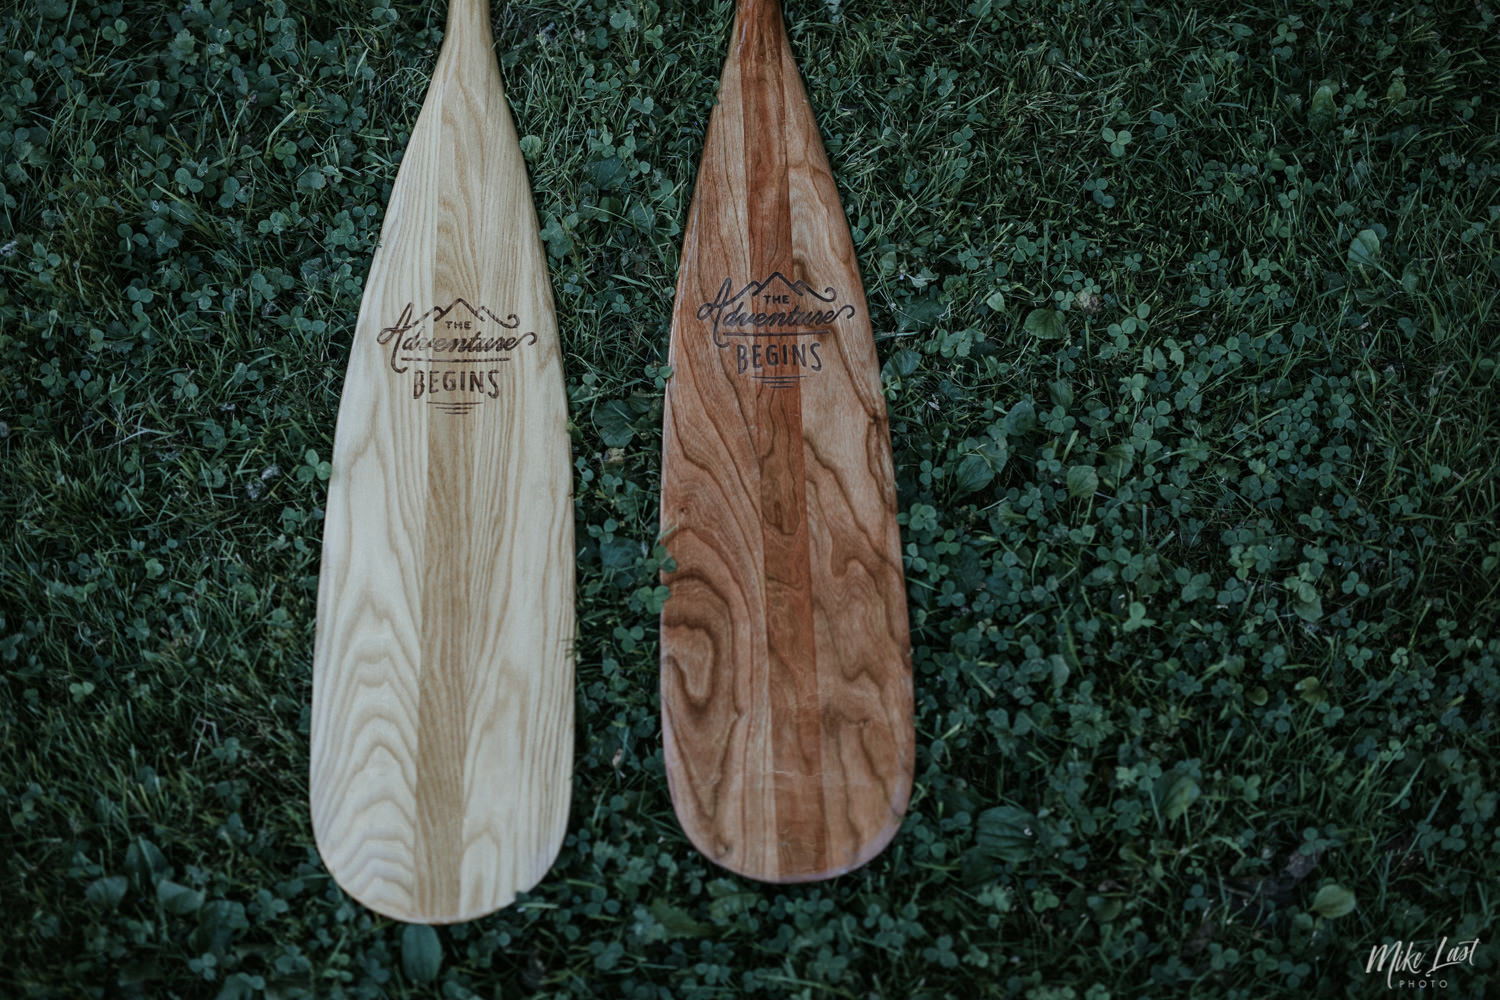 Bride and groom's matching wedding canoe paddles.